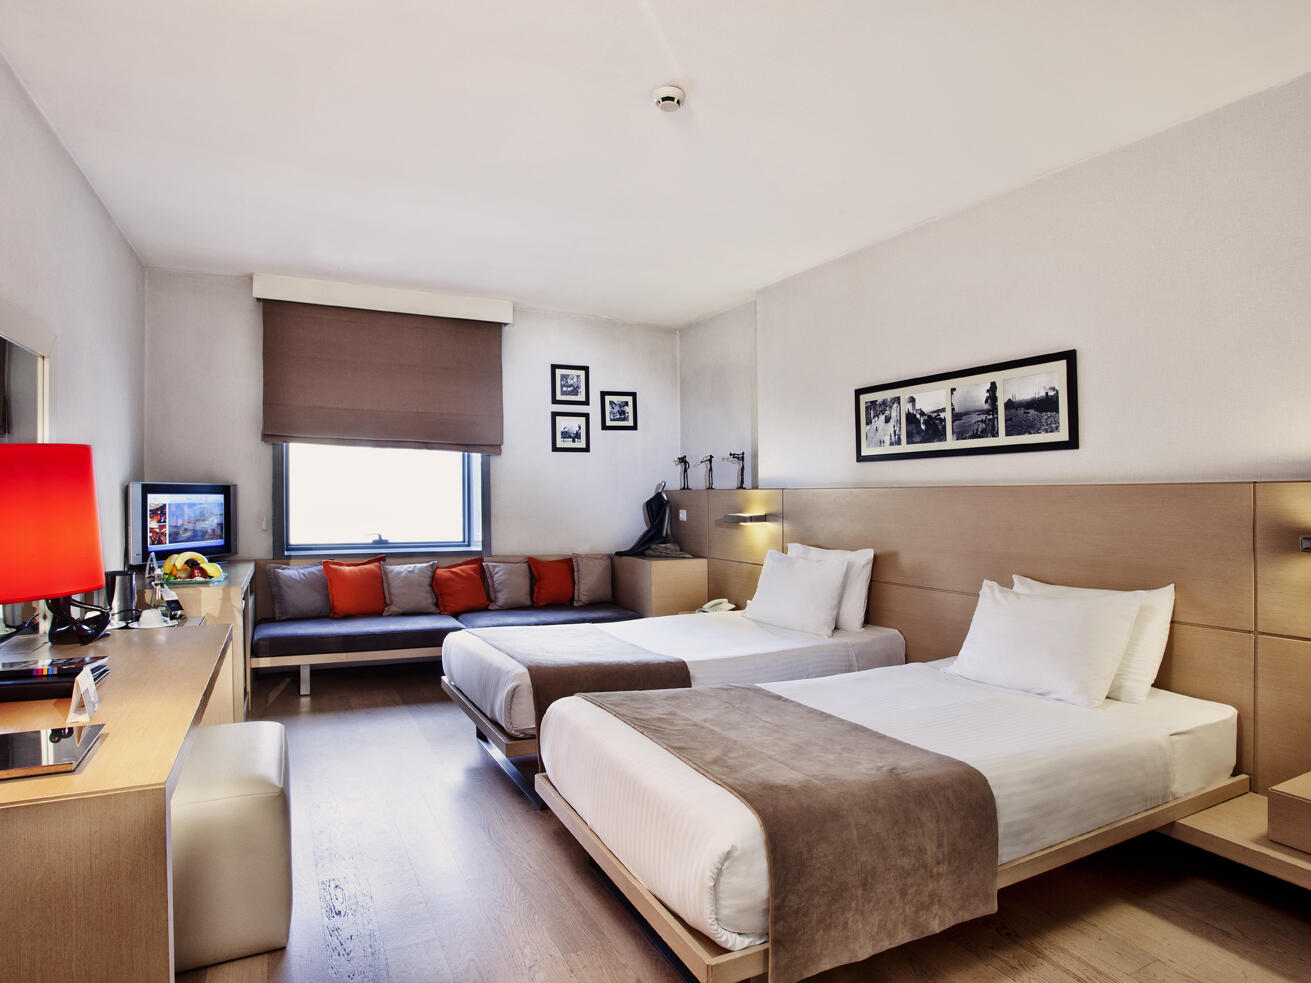 Double room at Eresin taxim premier.